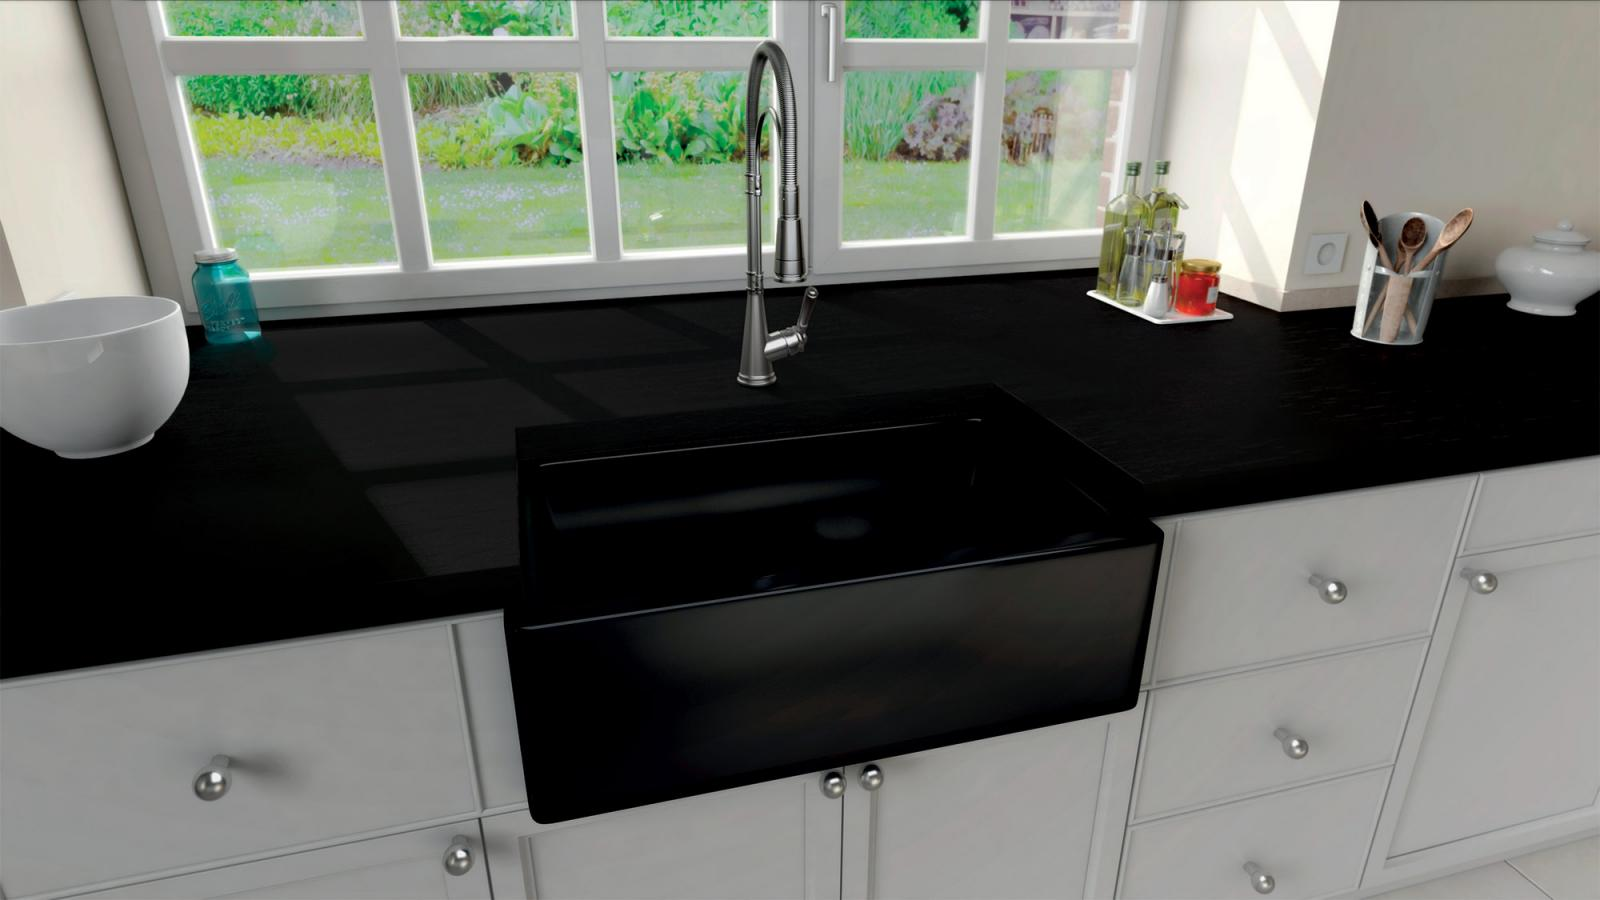 High-quality sink Philippe II Black - single bowl, ceramic - ambience 1